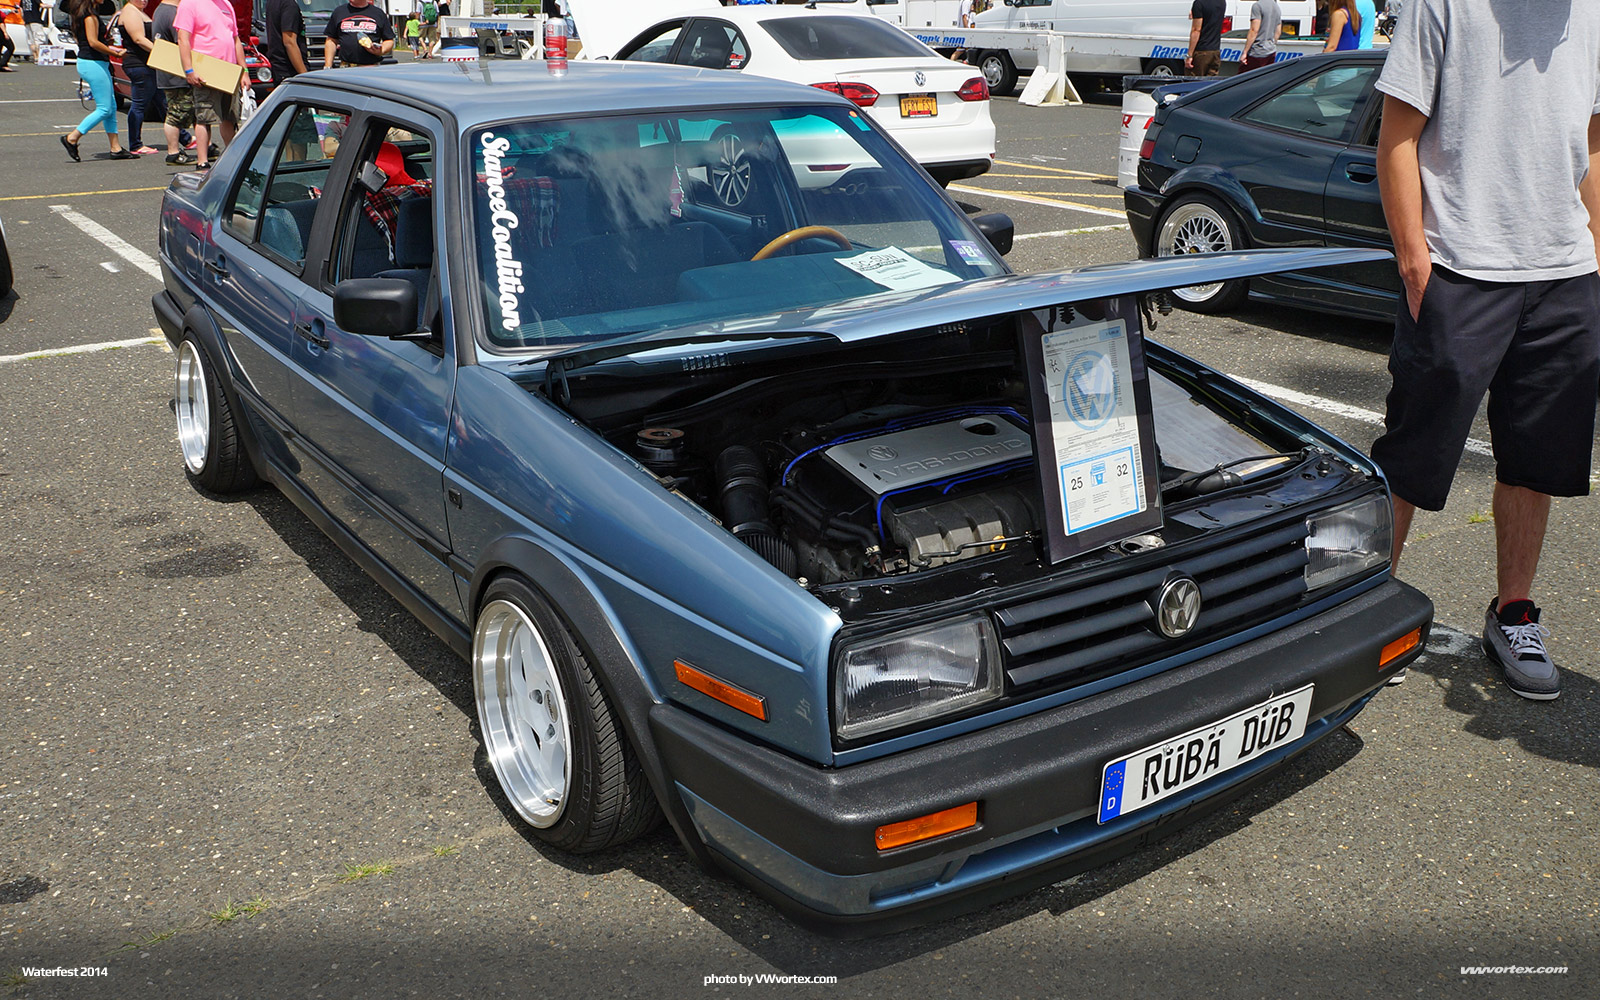 2014-waterfest-vw-audi-366